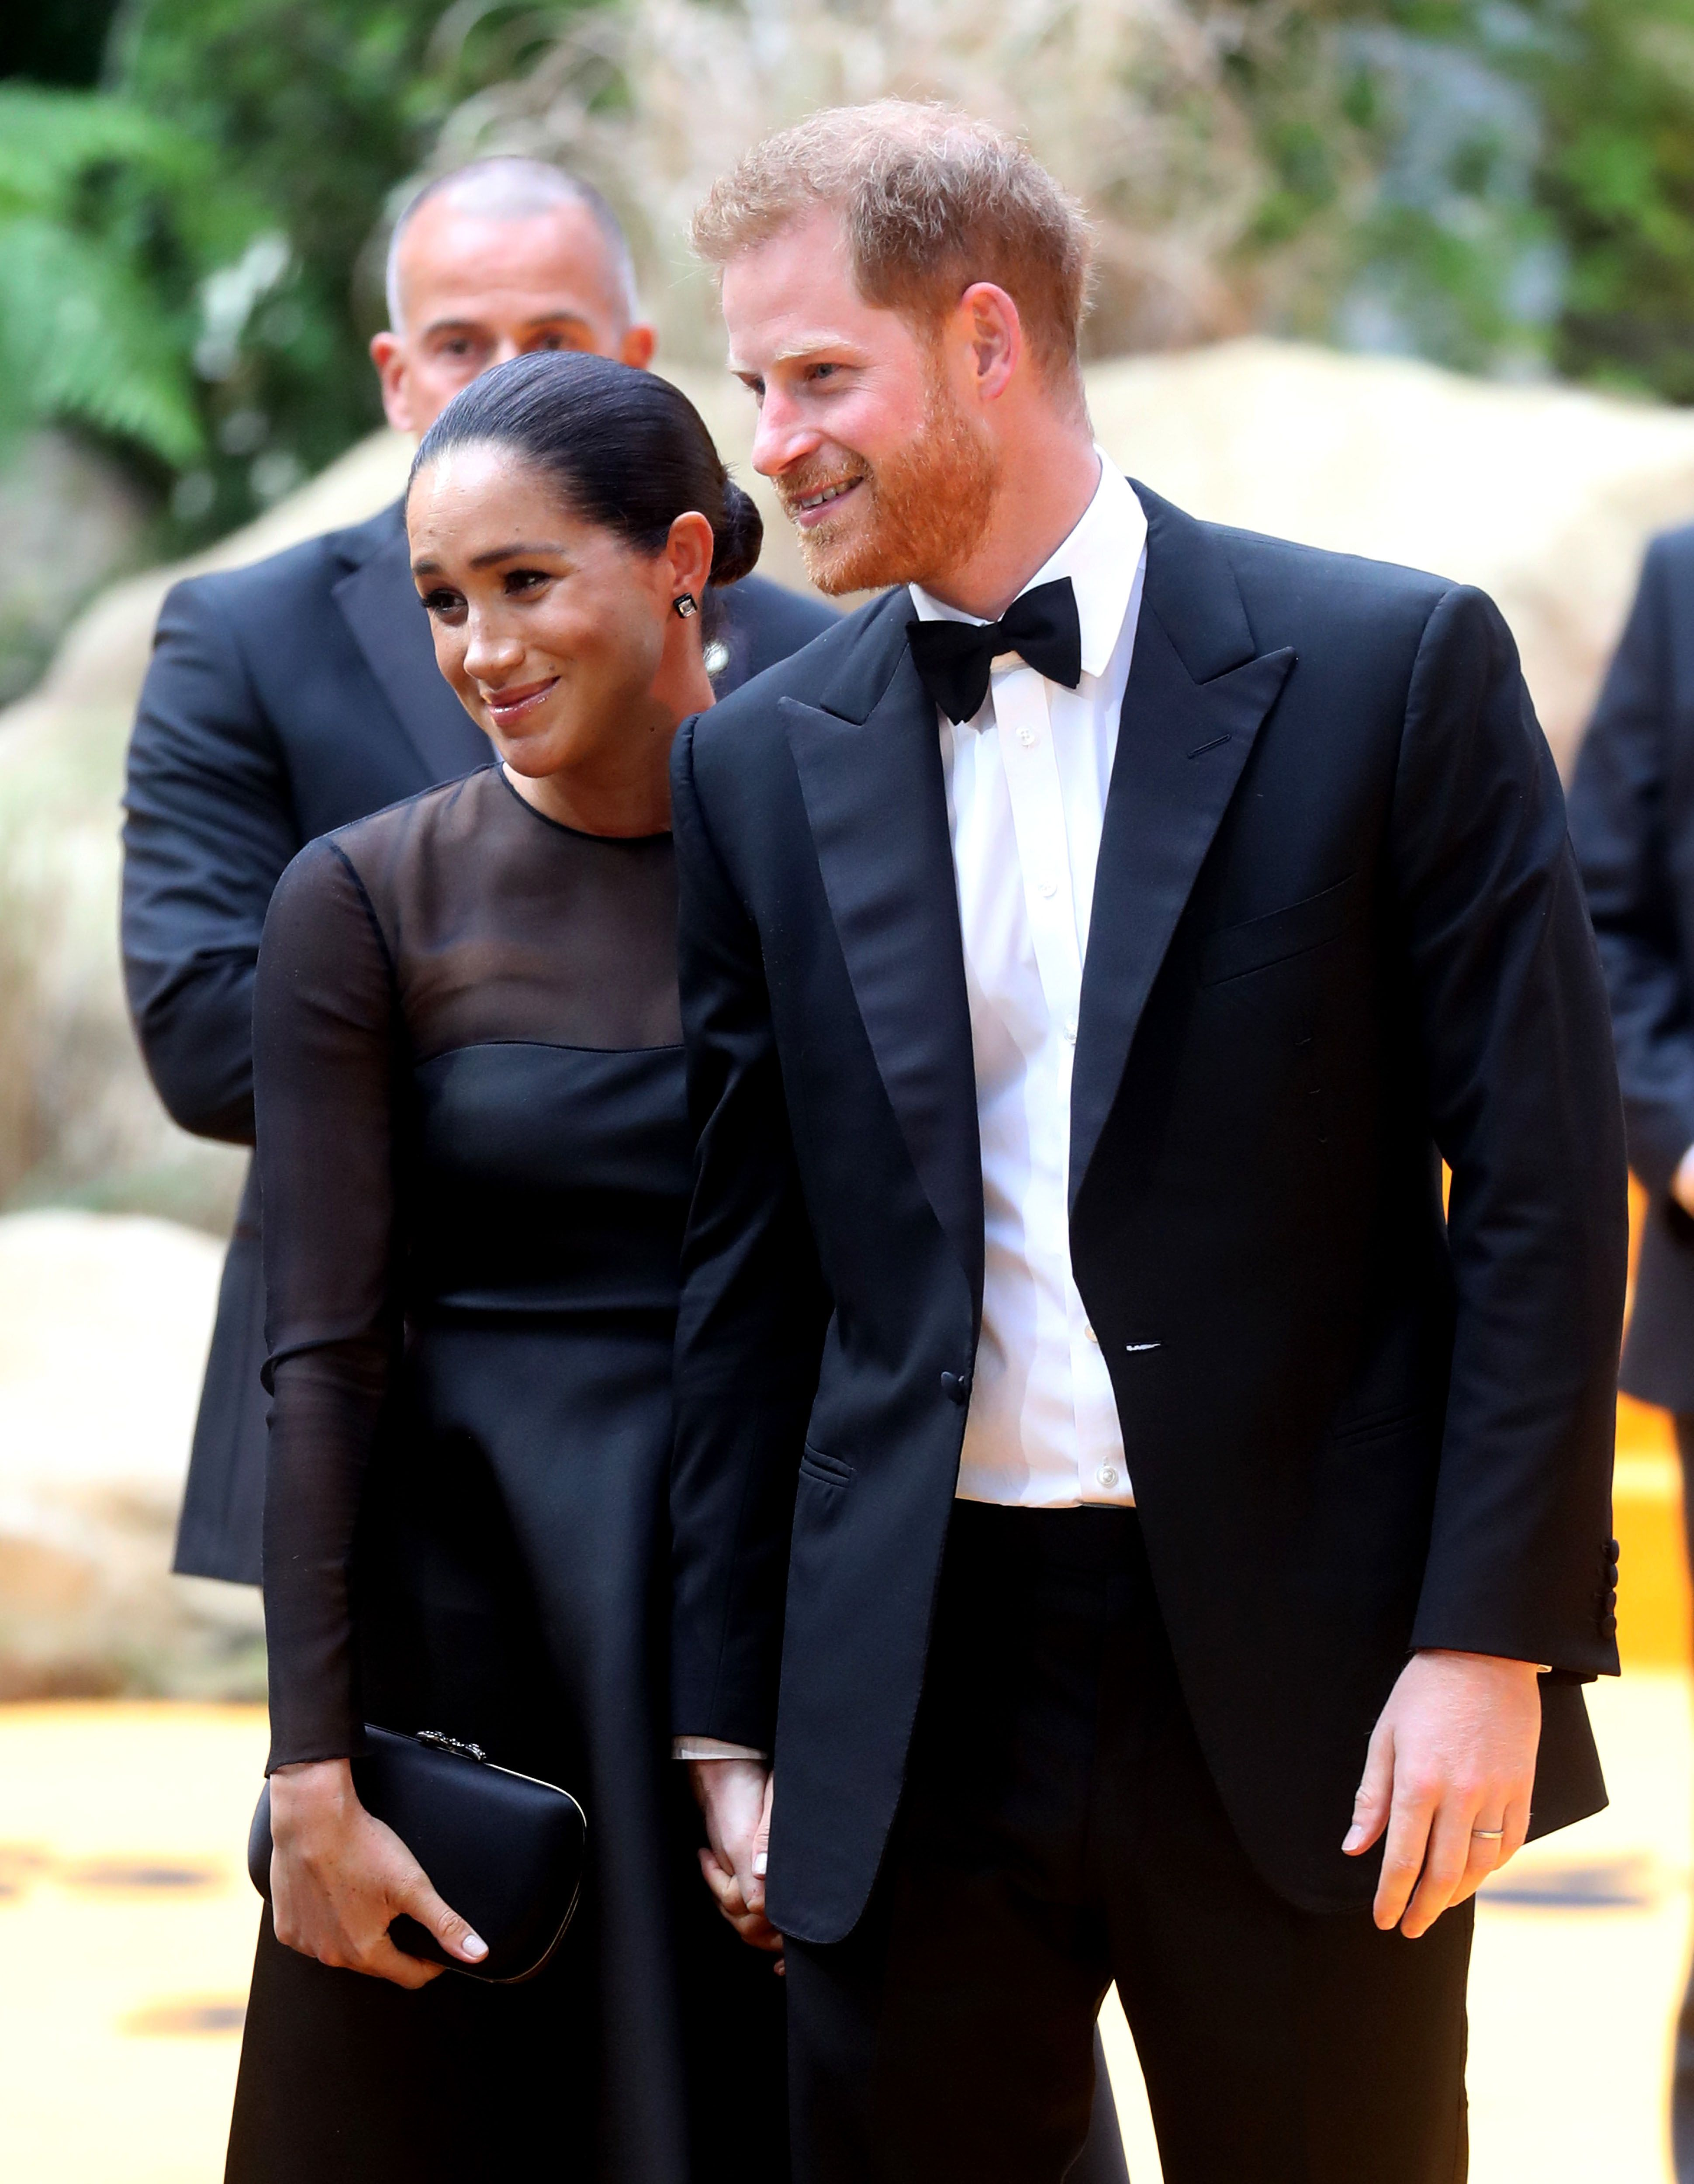 Prince Harry drops a huge hint that Meghan Markle could be pregnant